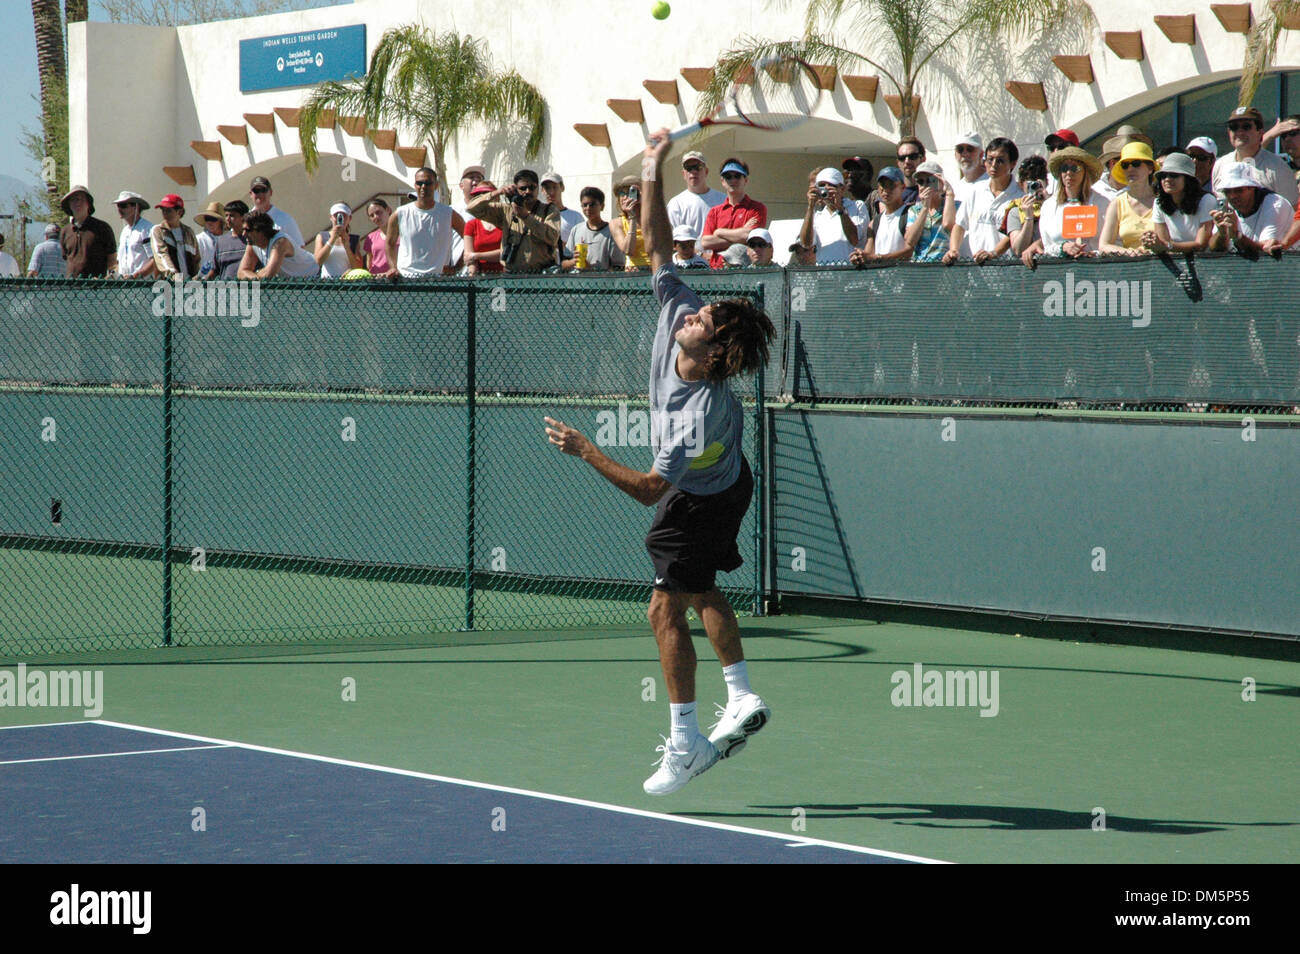 Mar 12, 2005; Indian Wells, CA, USA; ROGER FEDERER works out in preparation for his Sunday, March 13 match, at the Stock Photo